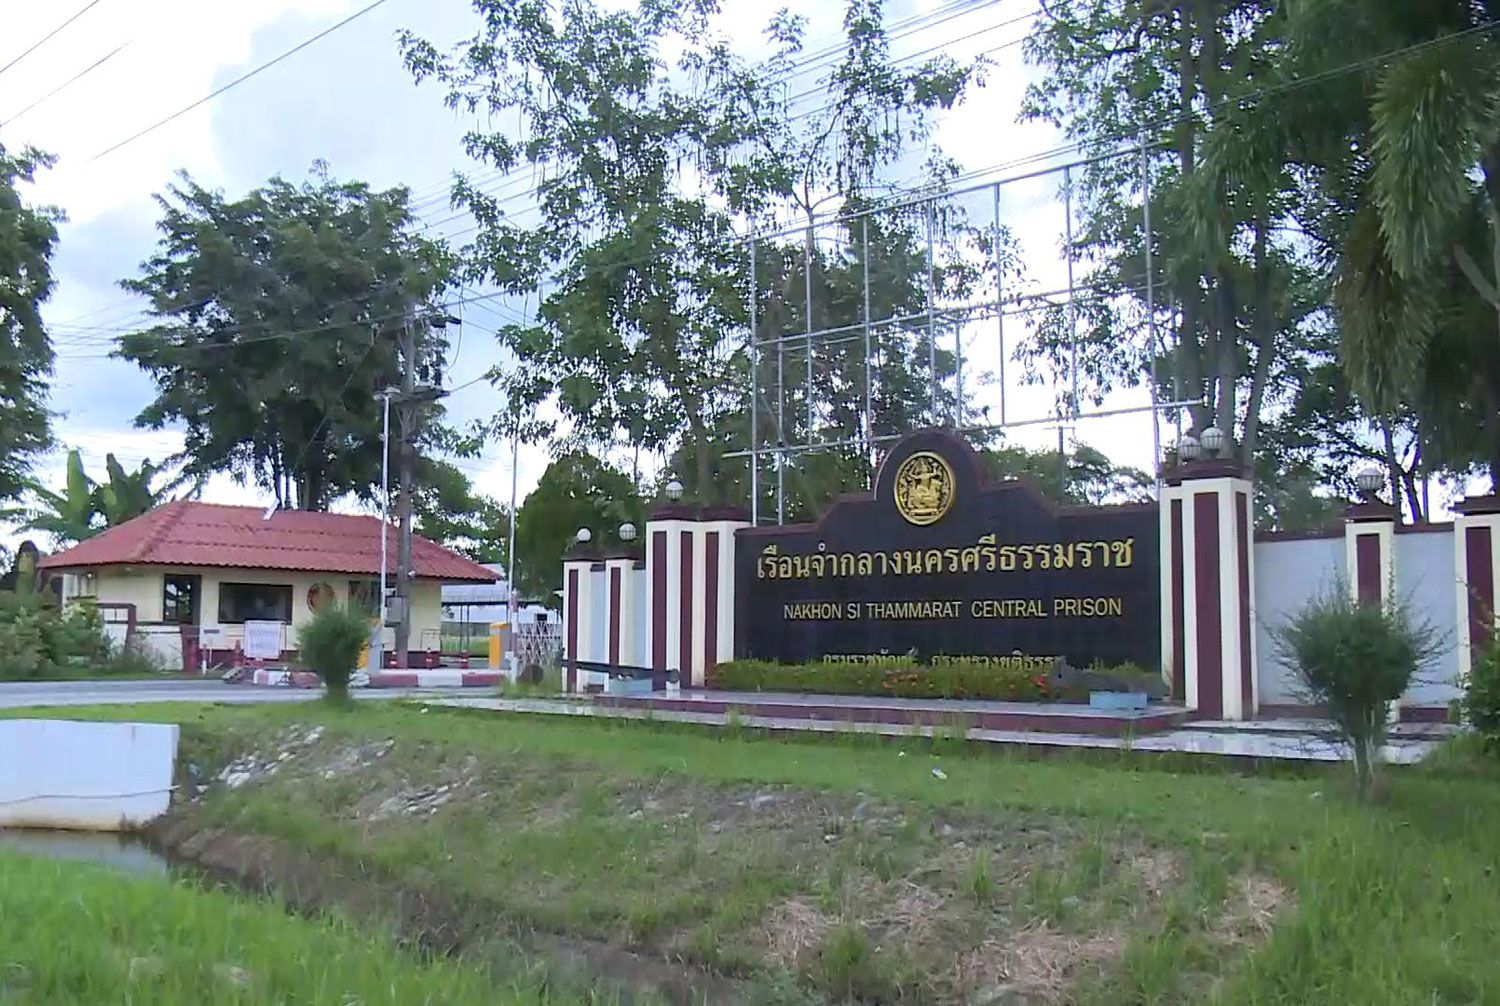 Nakhon Si Thammarat widens lockdowns as prison infections rise